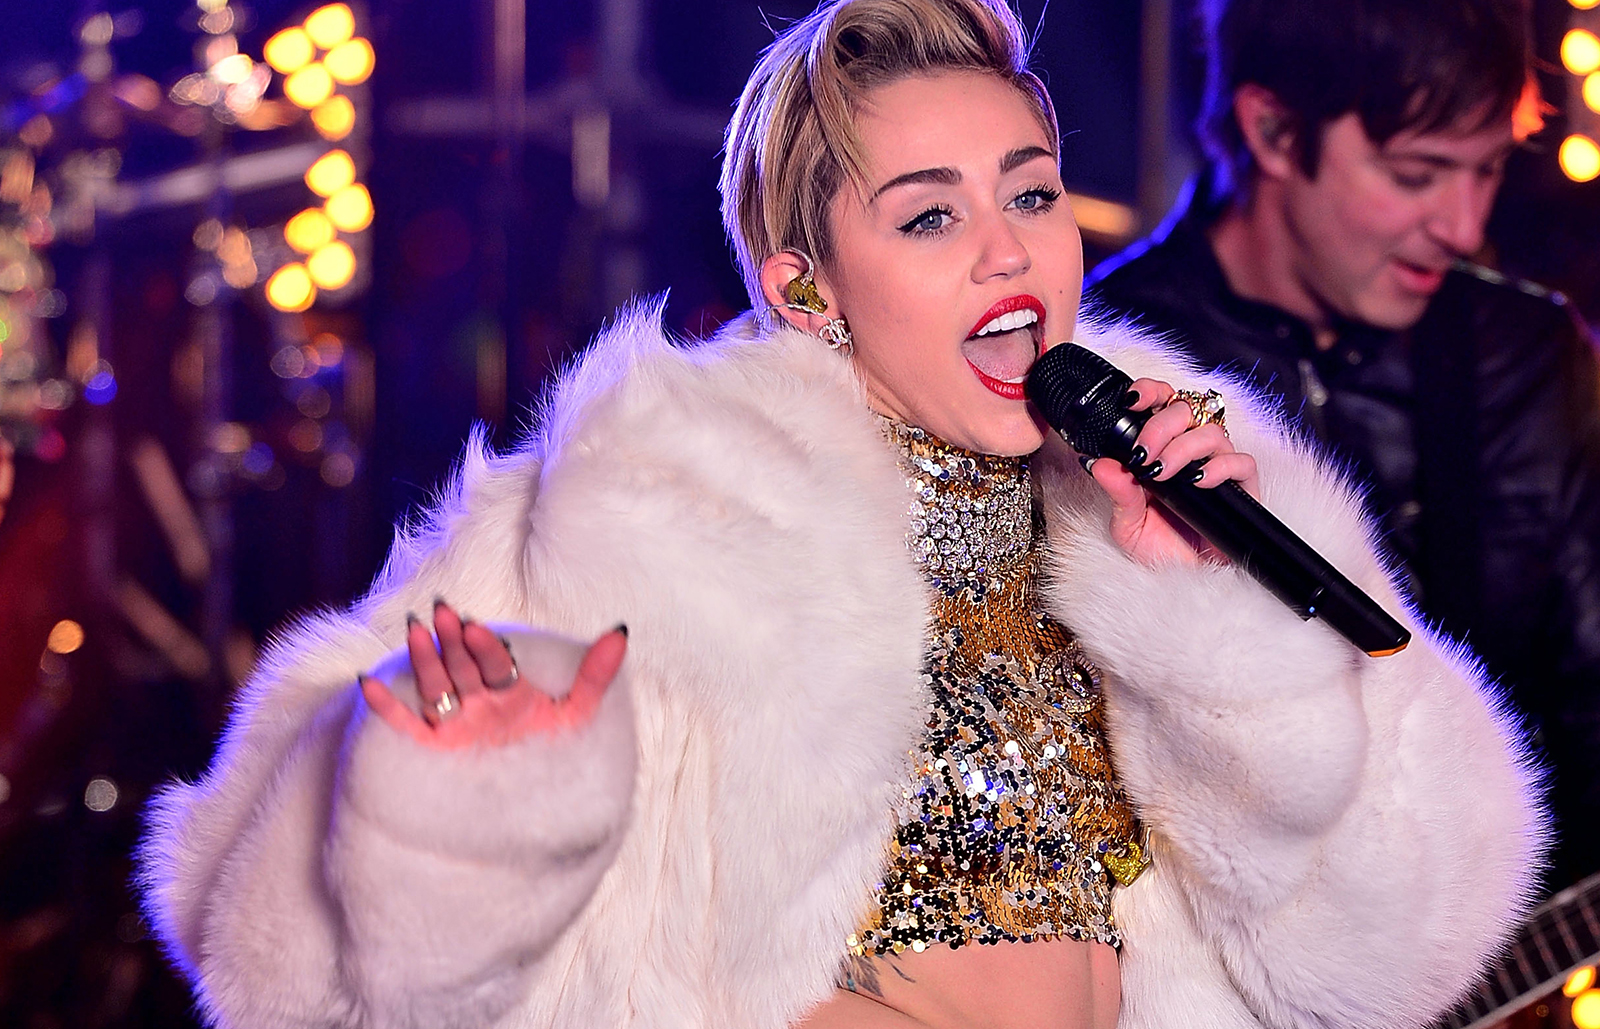 New years eve times square bathroom - Miley Cyrus Performs At Dick Clark S New Year S Rockin Eve With Ryan Seacrest 2014 In Times Square